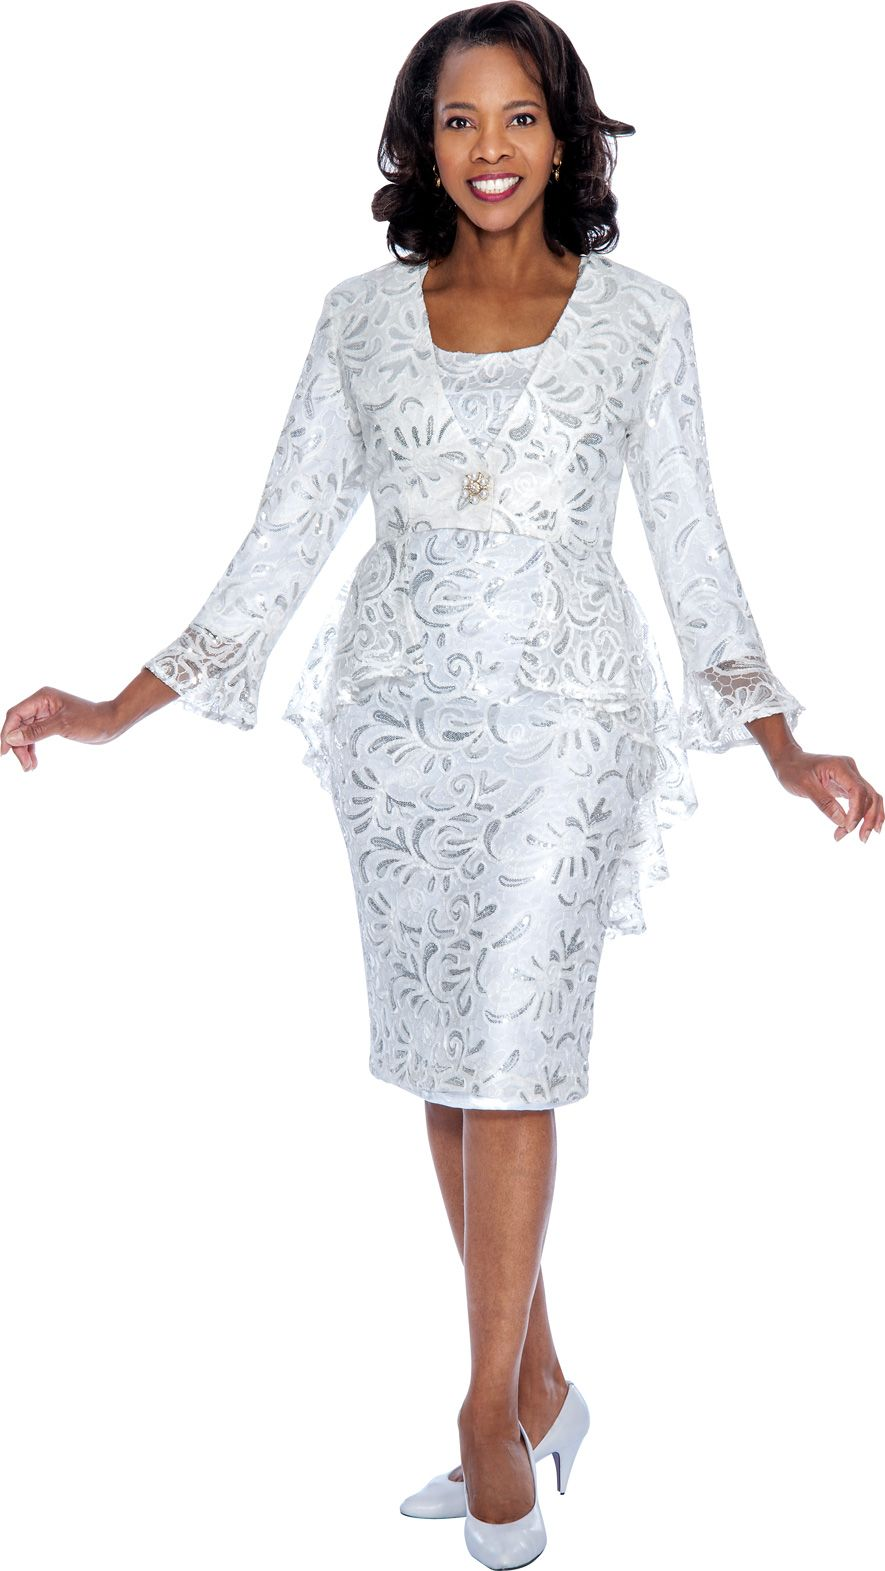 Nubiano DN4592 Sequin Lace Church Suit - French Novelty